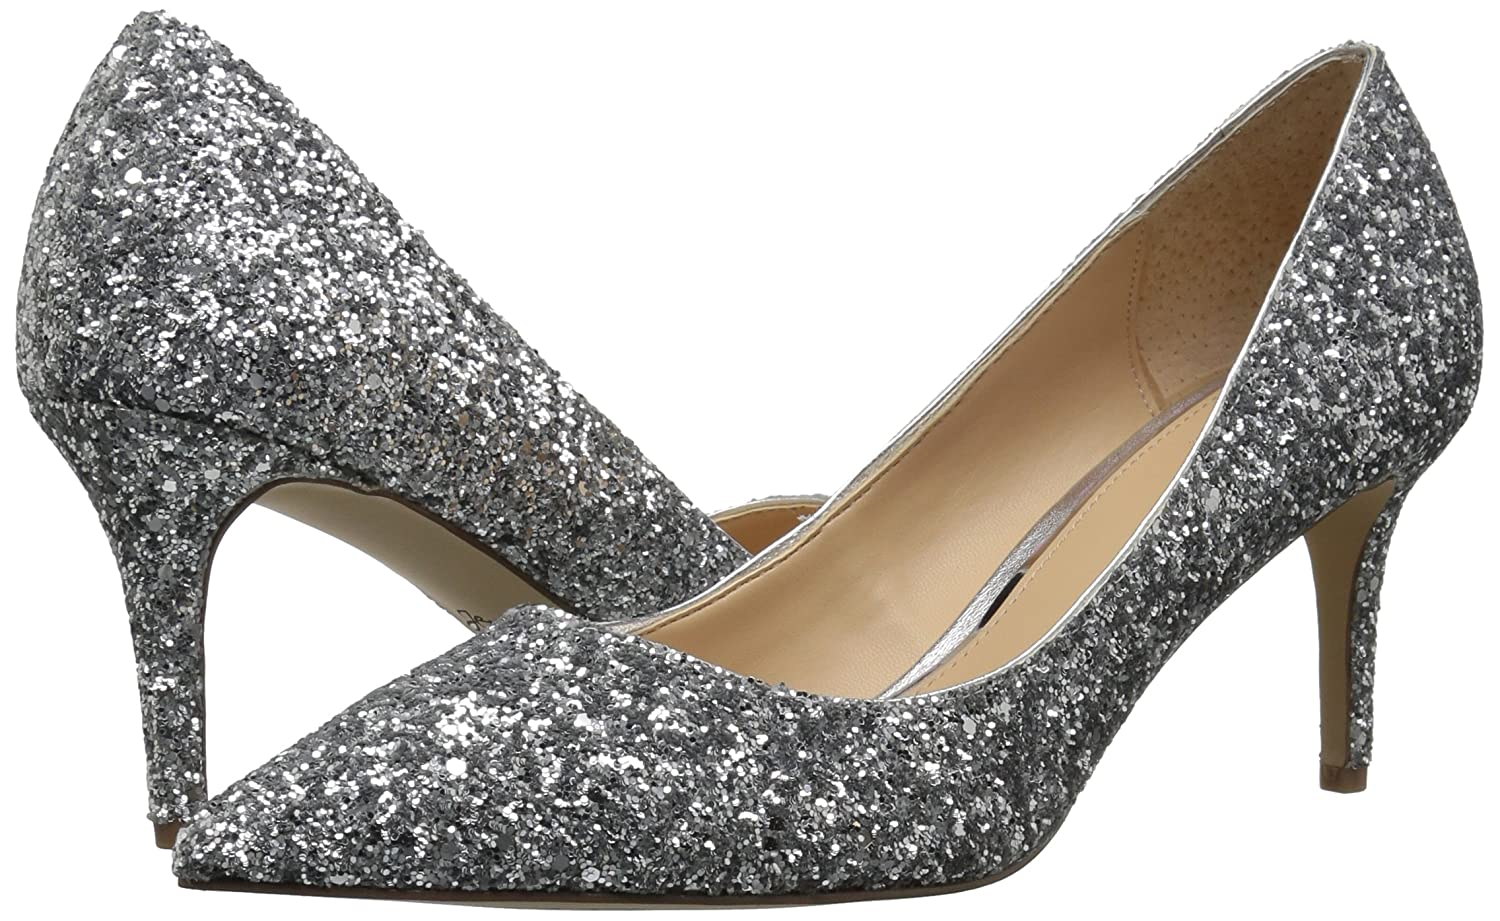 Badgley Pump Mischka Jewel Women's Lyla Pump Badgley B06Y2JR8B1 10 B(M) US|Silver 366340